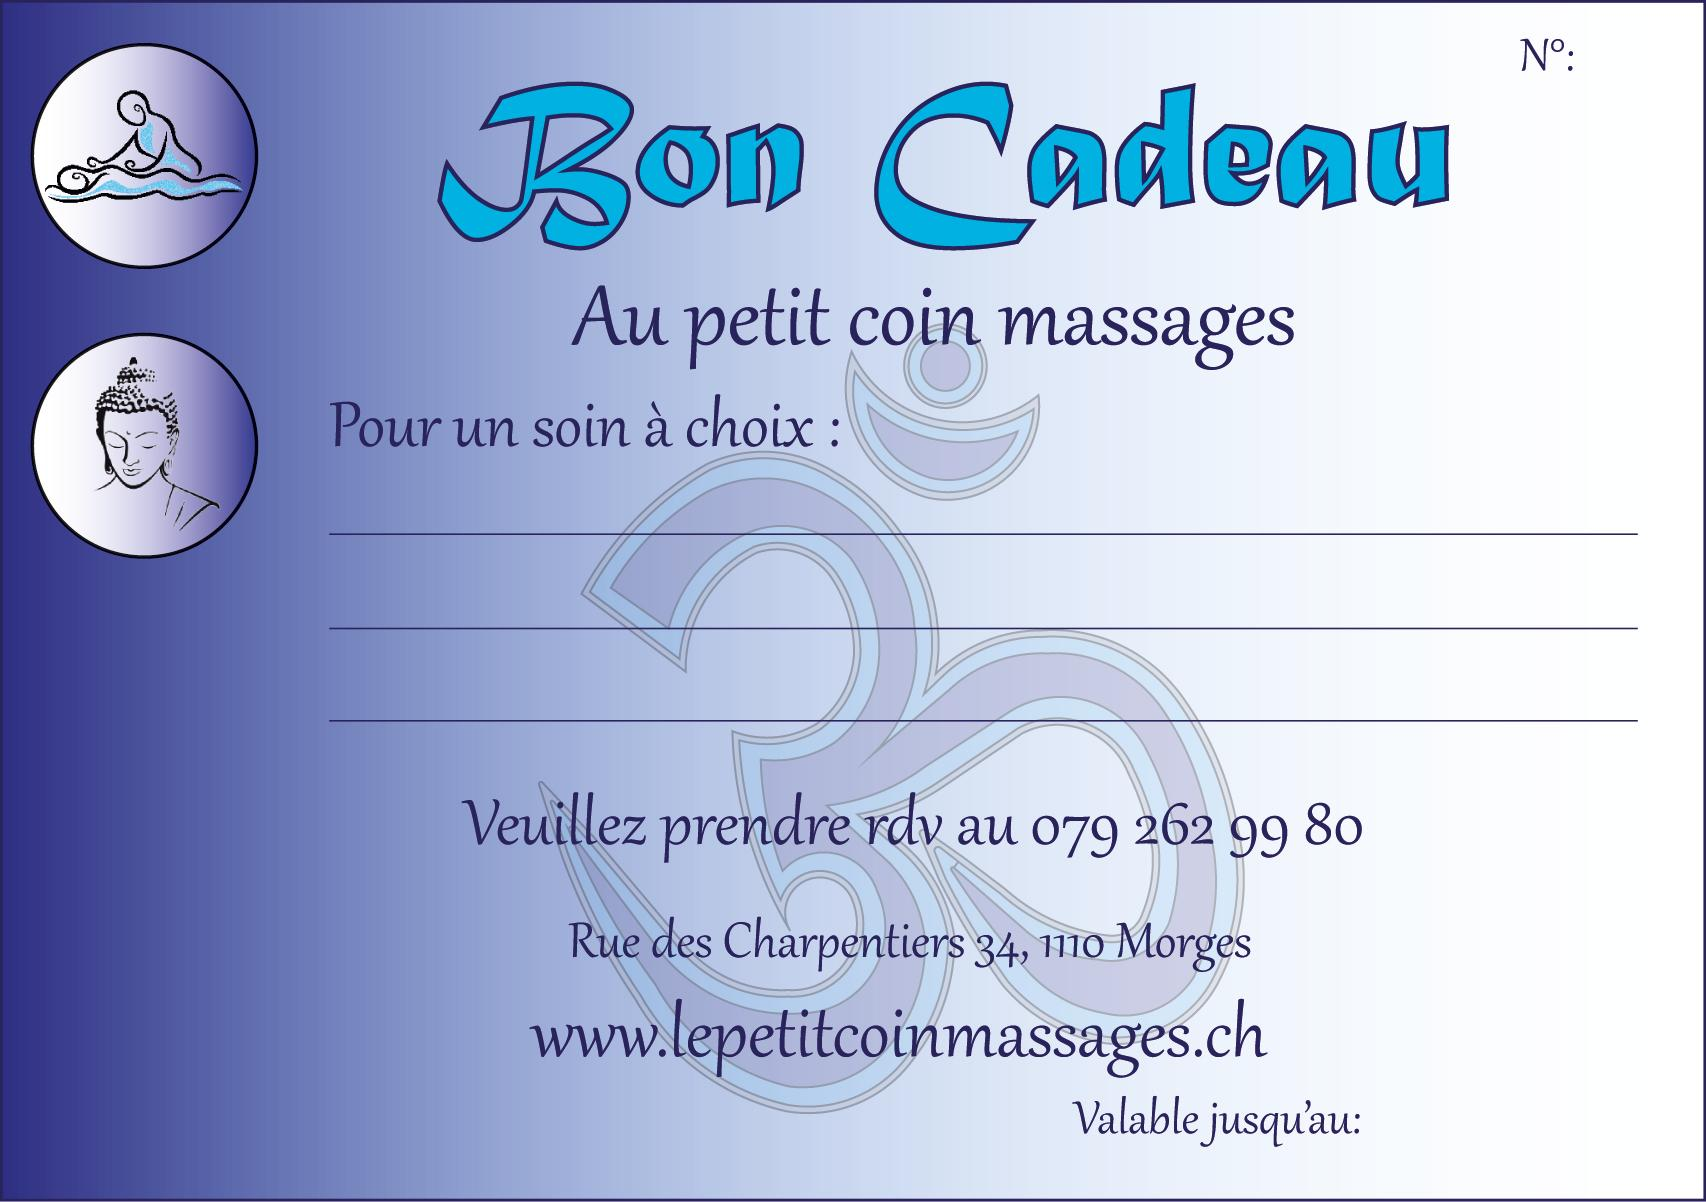 Le Petit Coin Massages